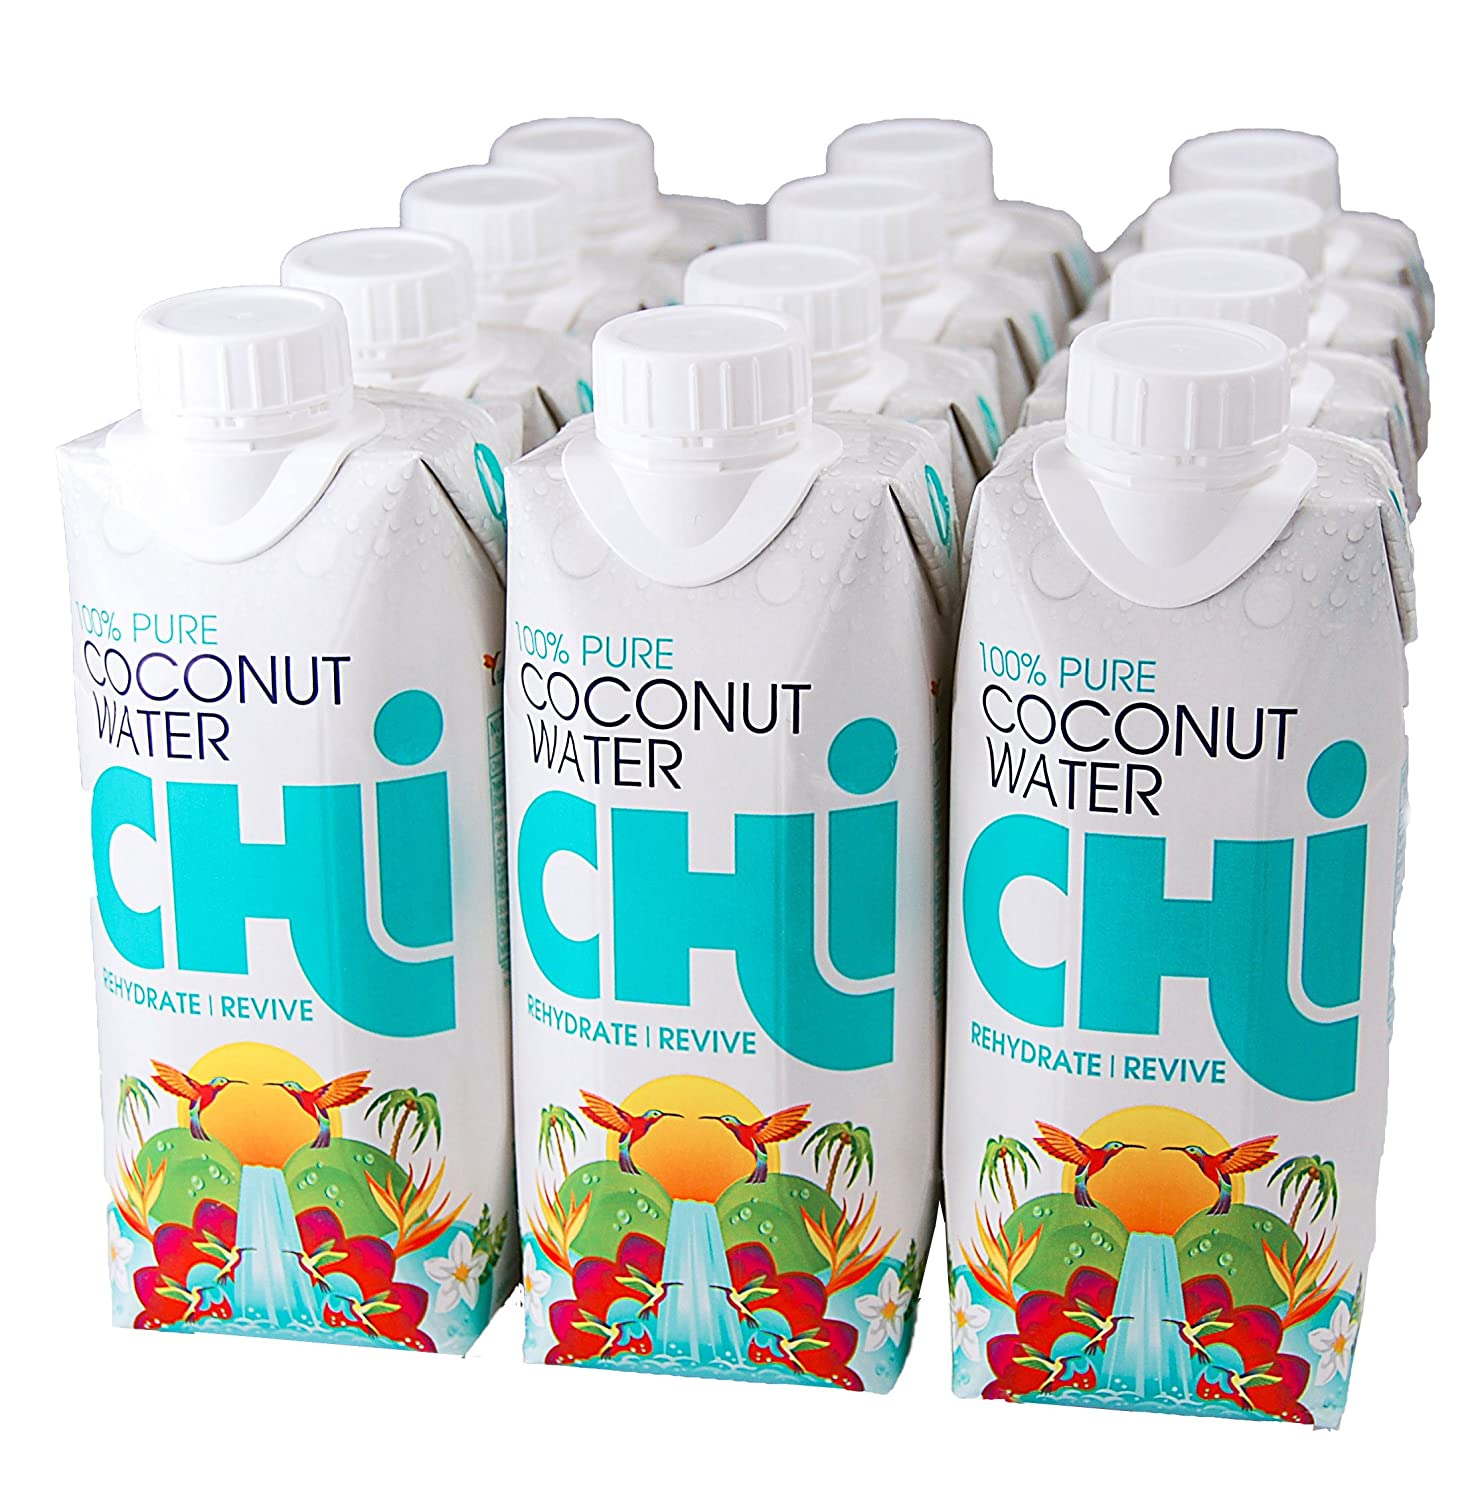 CHi 100% puro Coco Agua (Pure Coconut Water) 330 ml, 12 pack ...